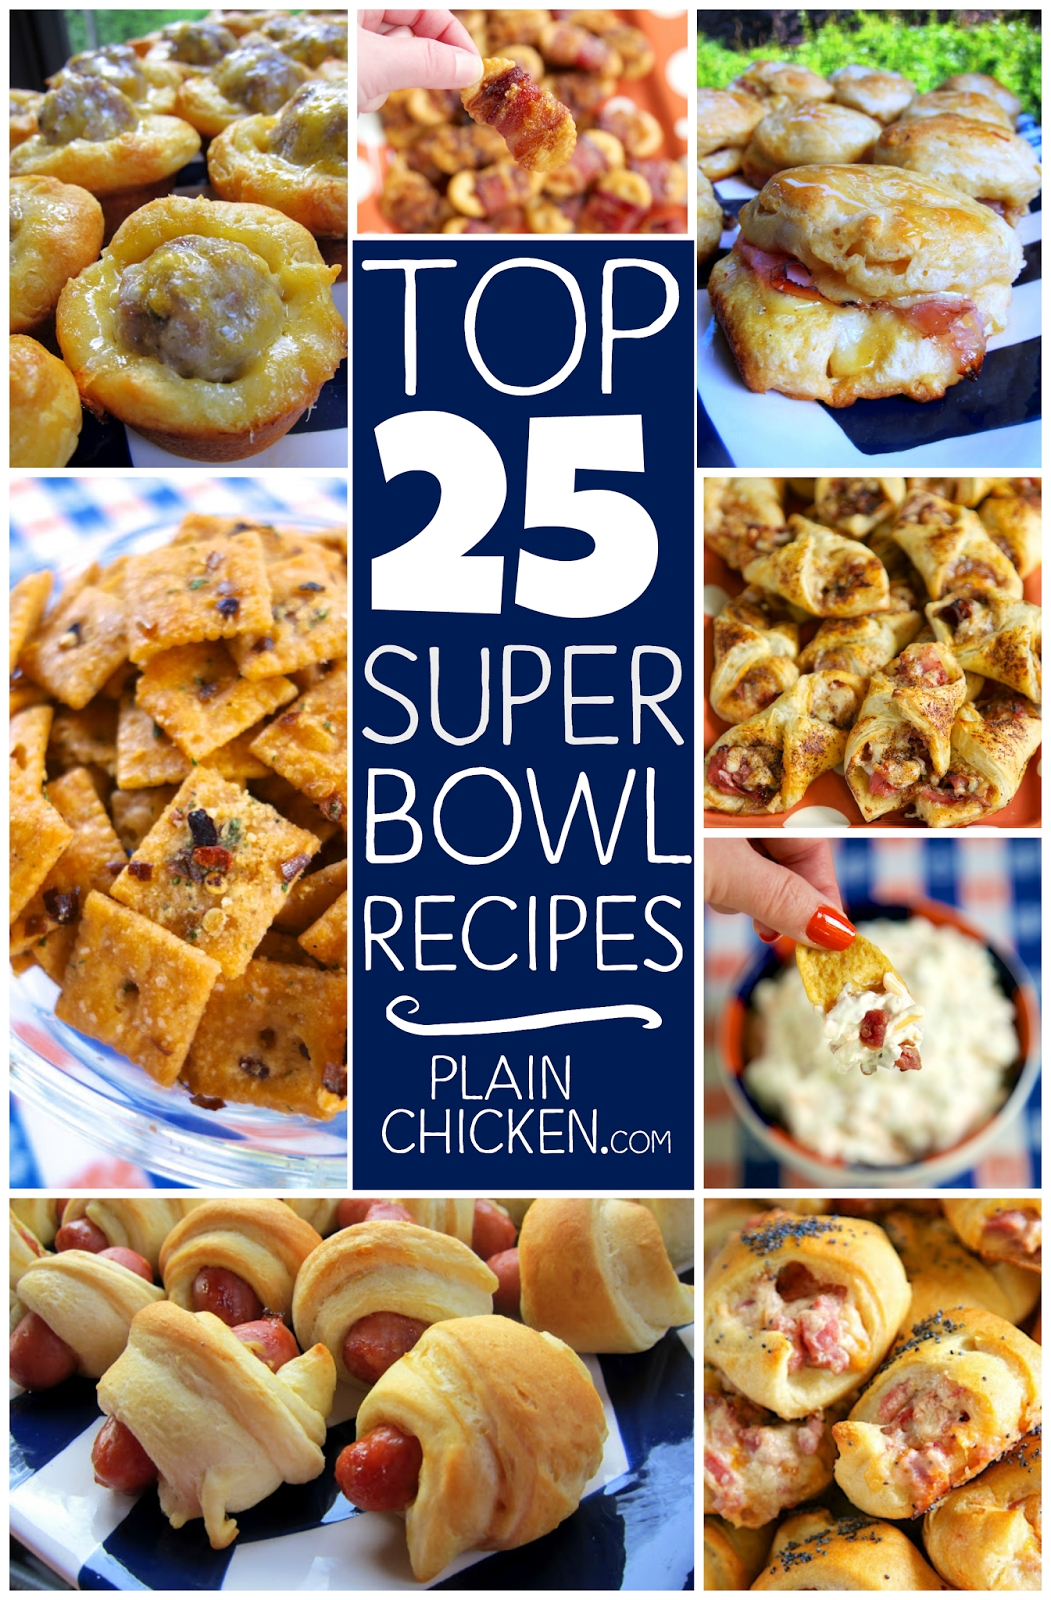 10 Perfect Super Bowl Sunday Food Ideas top 25 super bowl recipes plain chicken 2020